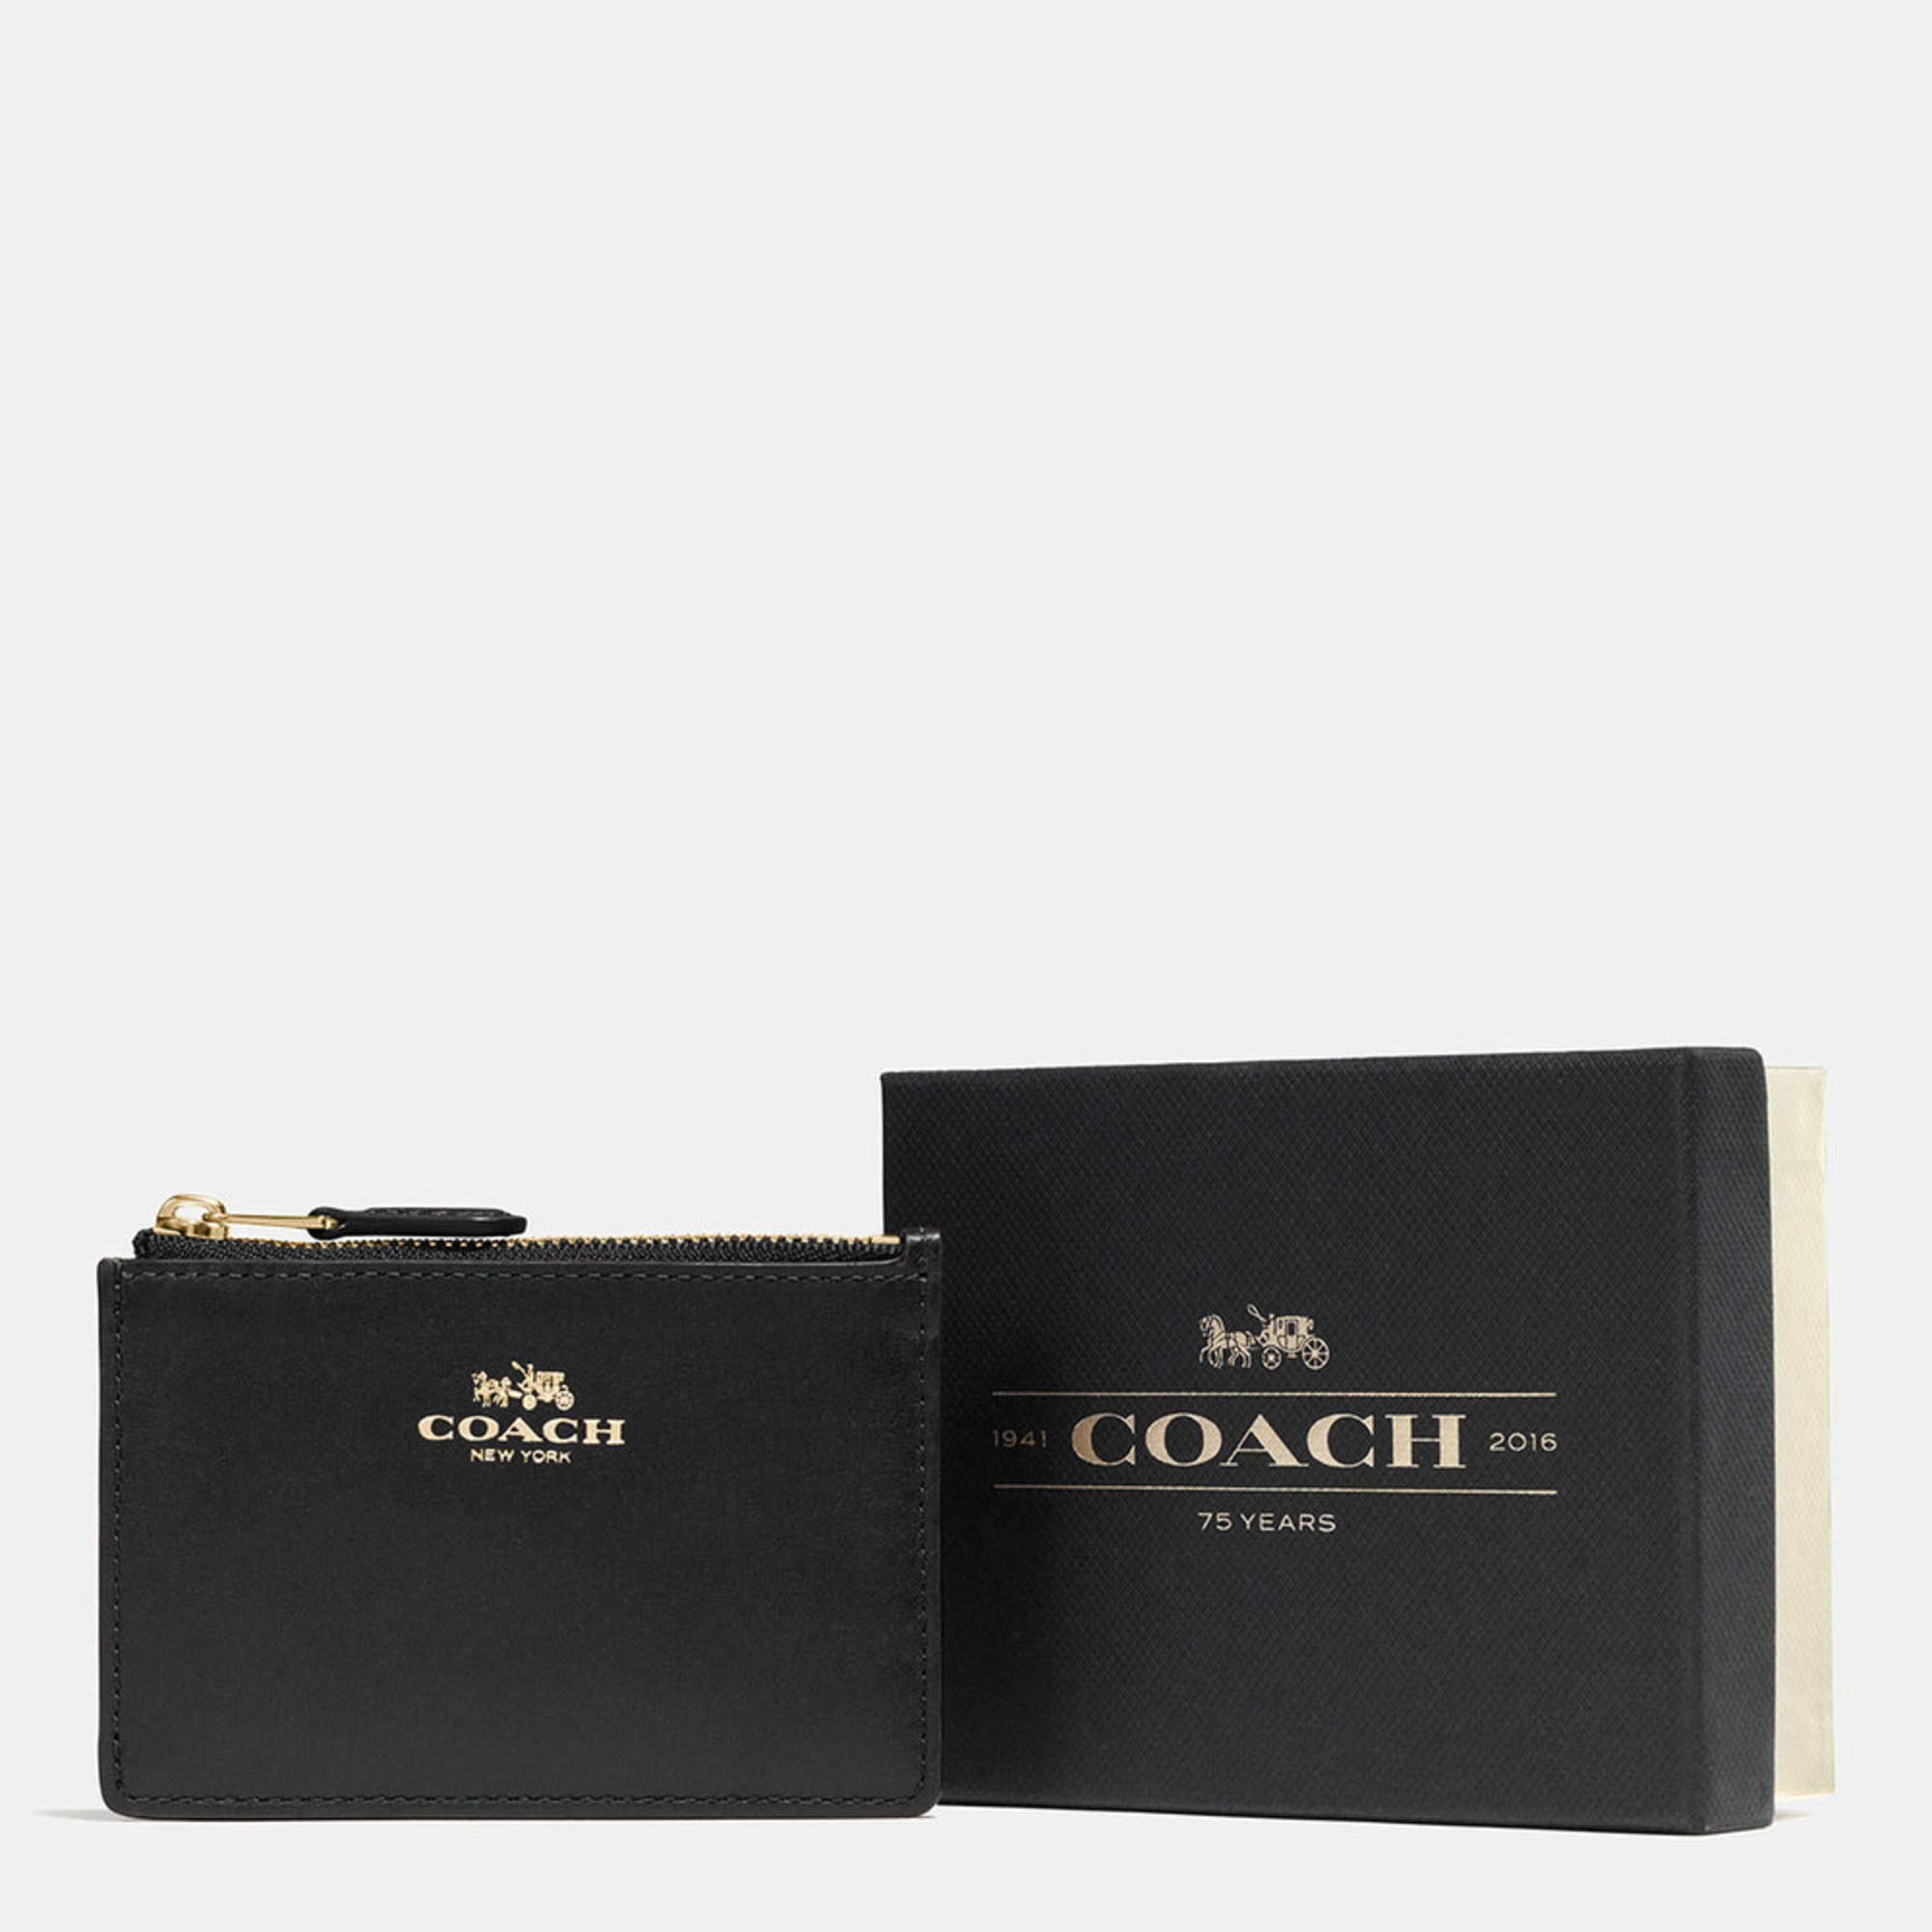 coach bag clearance outlet 6uex  coach bag clearance outlet